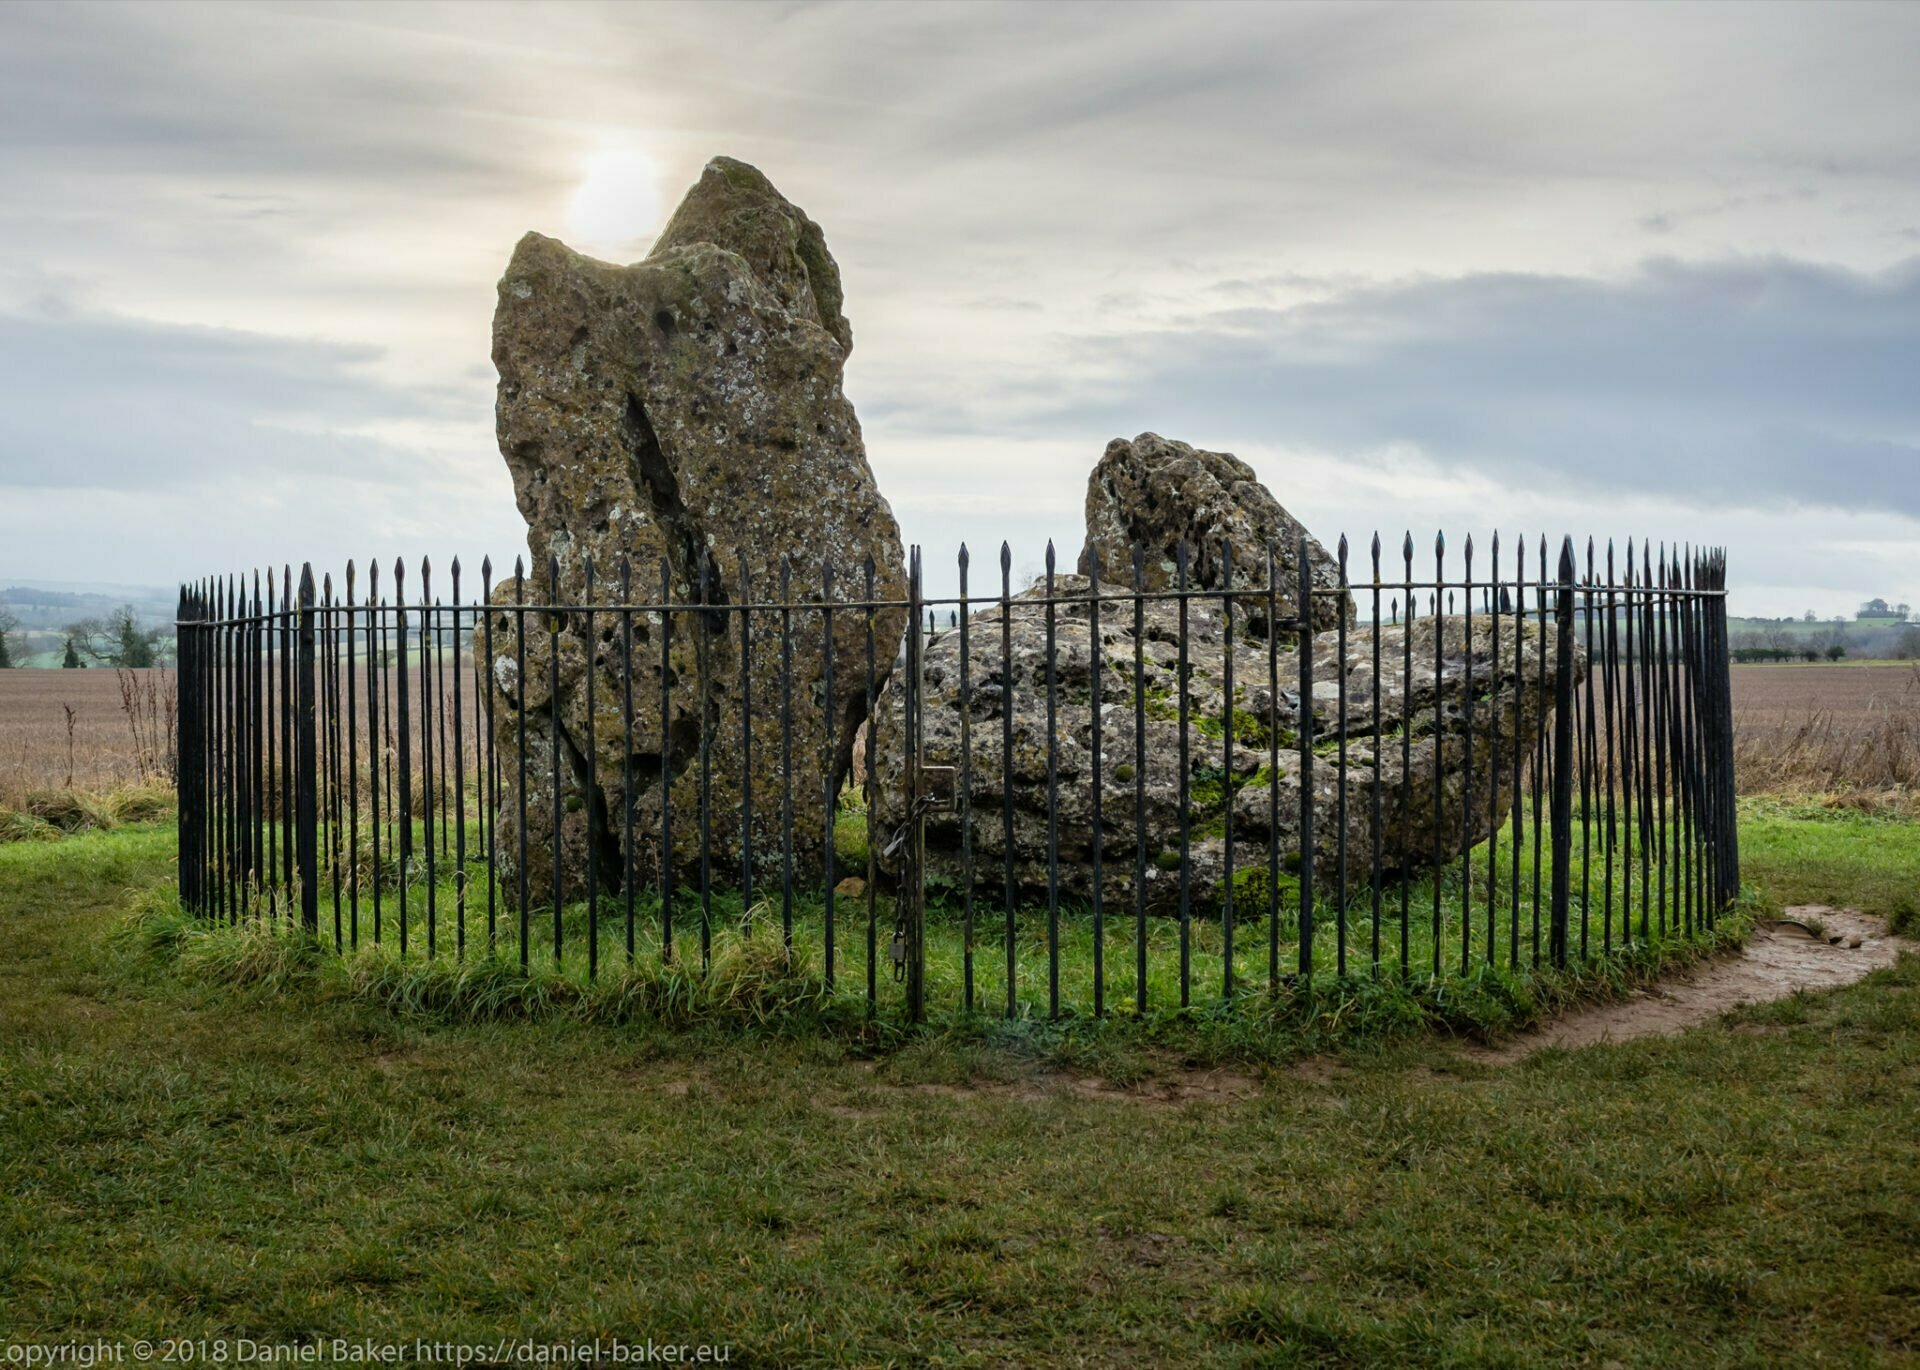 The Whispering Knights neolithic stones with the sun seemingly captured on top of one stone